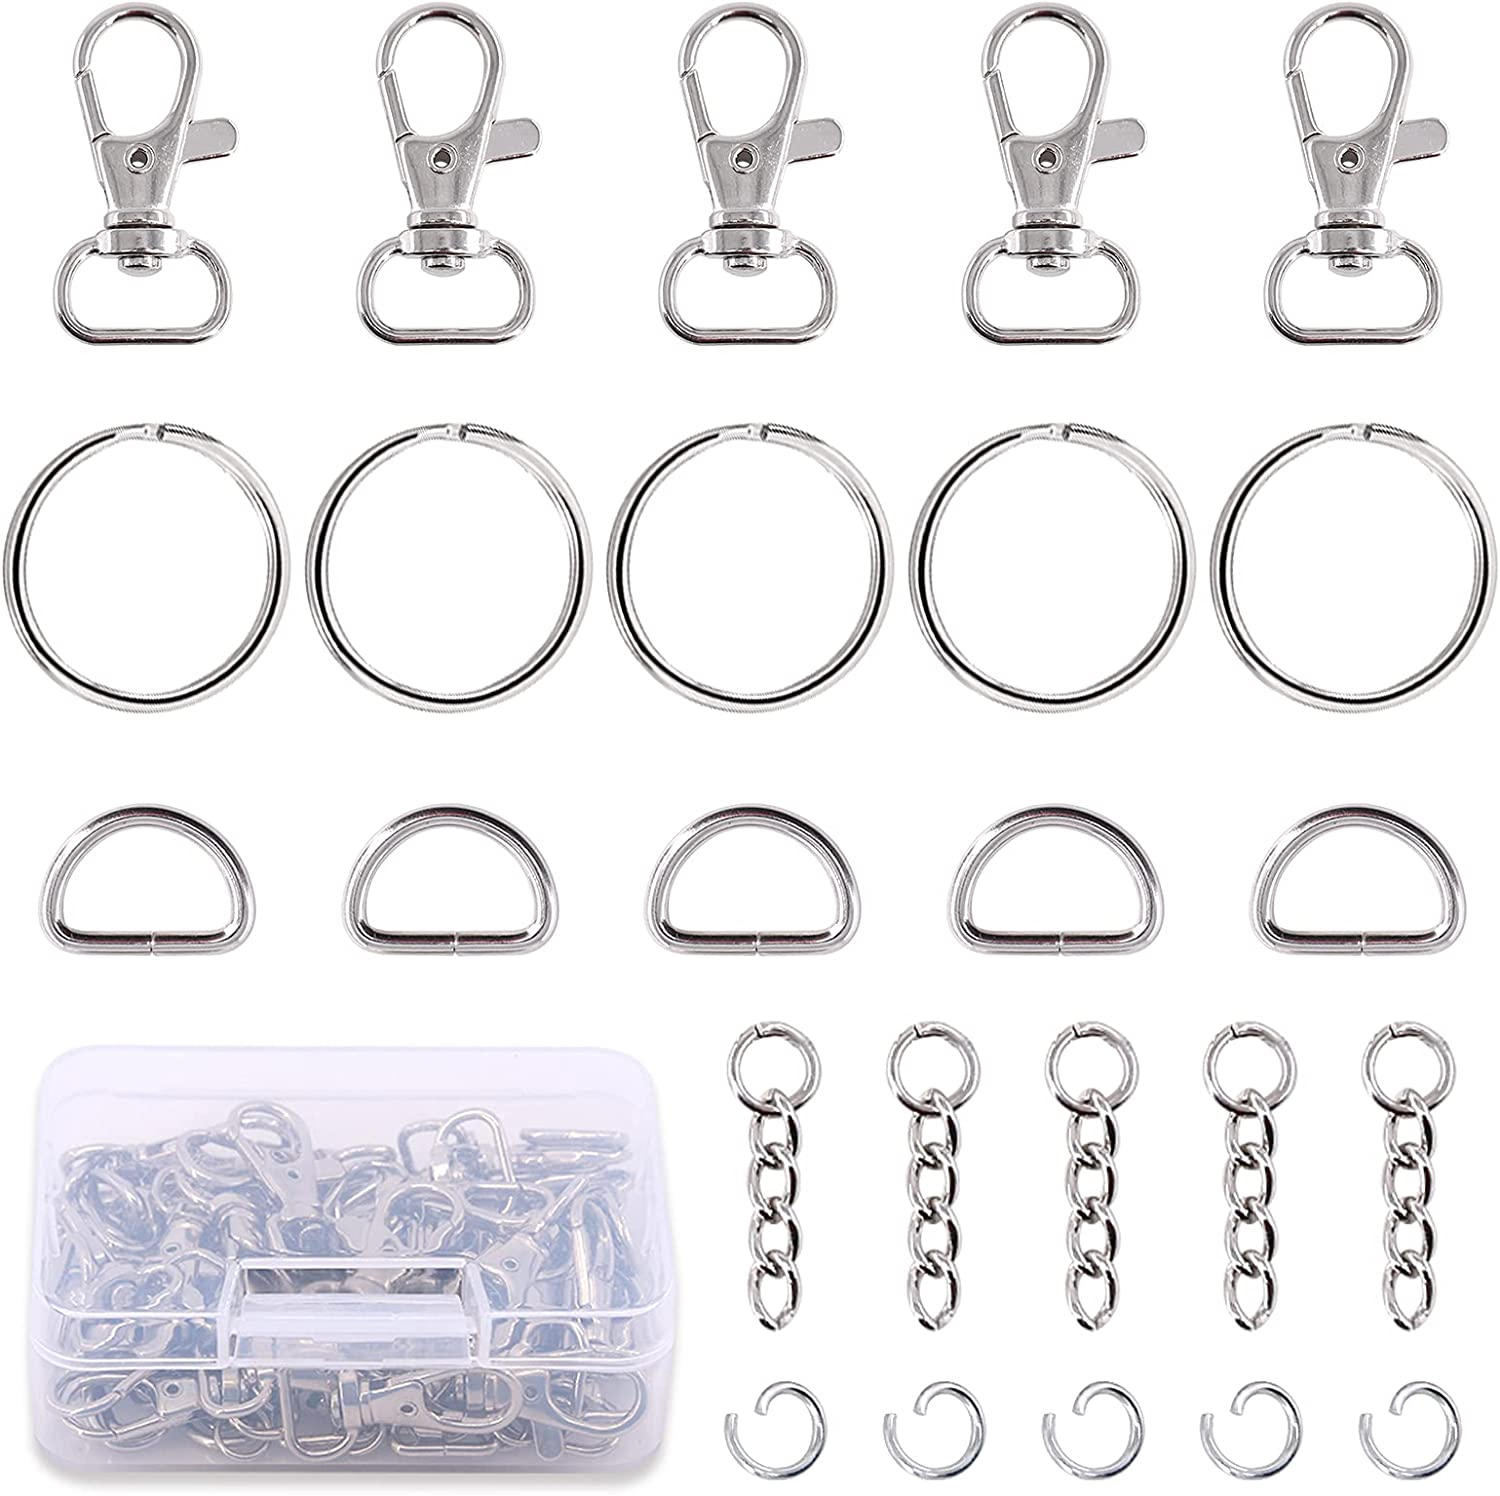 Swpeet 150Pcs Metal Lobster Chicago Mall Albuquerque Mall Claw Including 30Pc Kit Hook Clasps